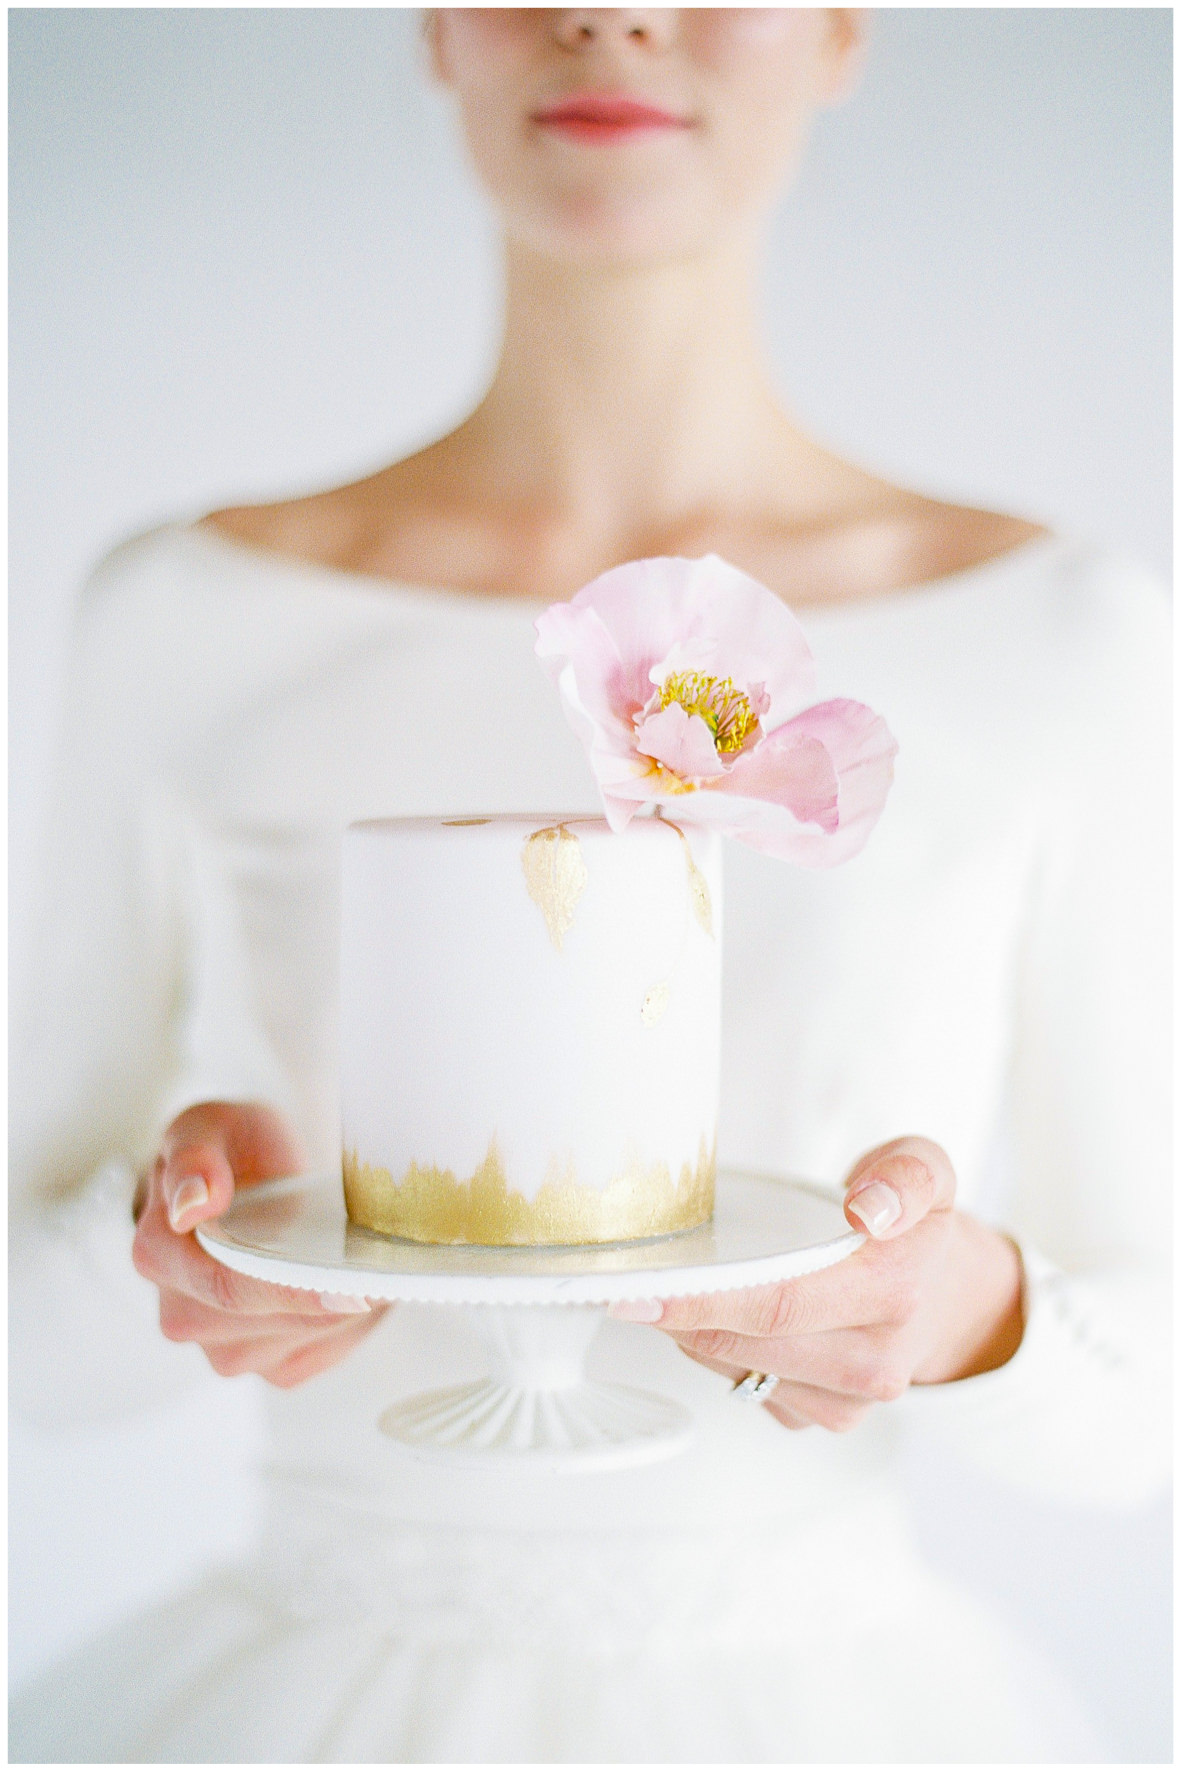 Lucy Davenport Photography, Loft Studios, Rebecca K Events, cake, soft pink, wedding cake, cakes by Krishanthi